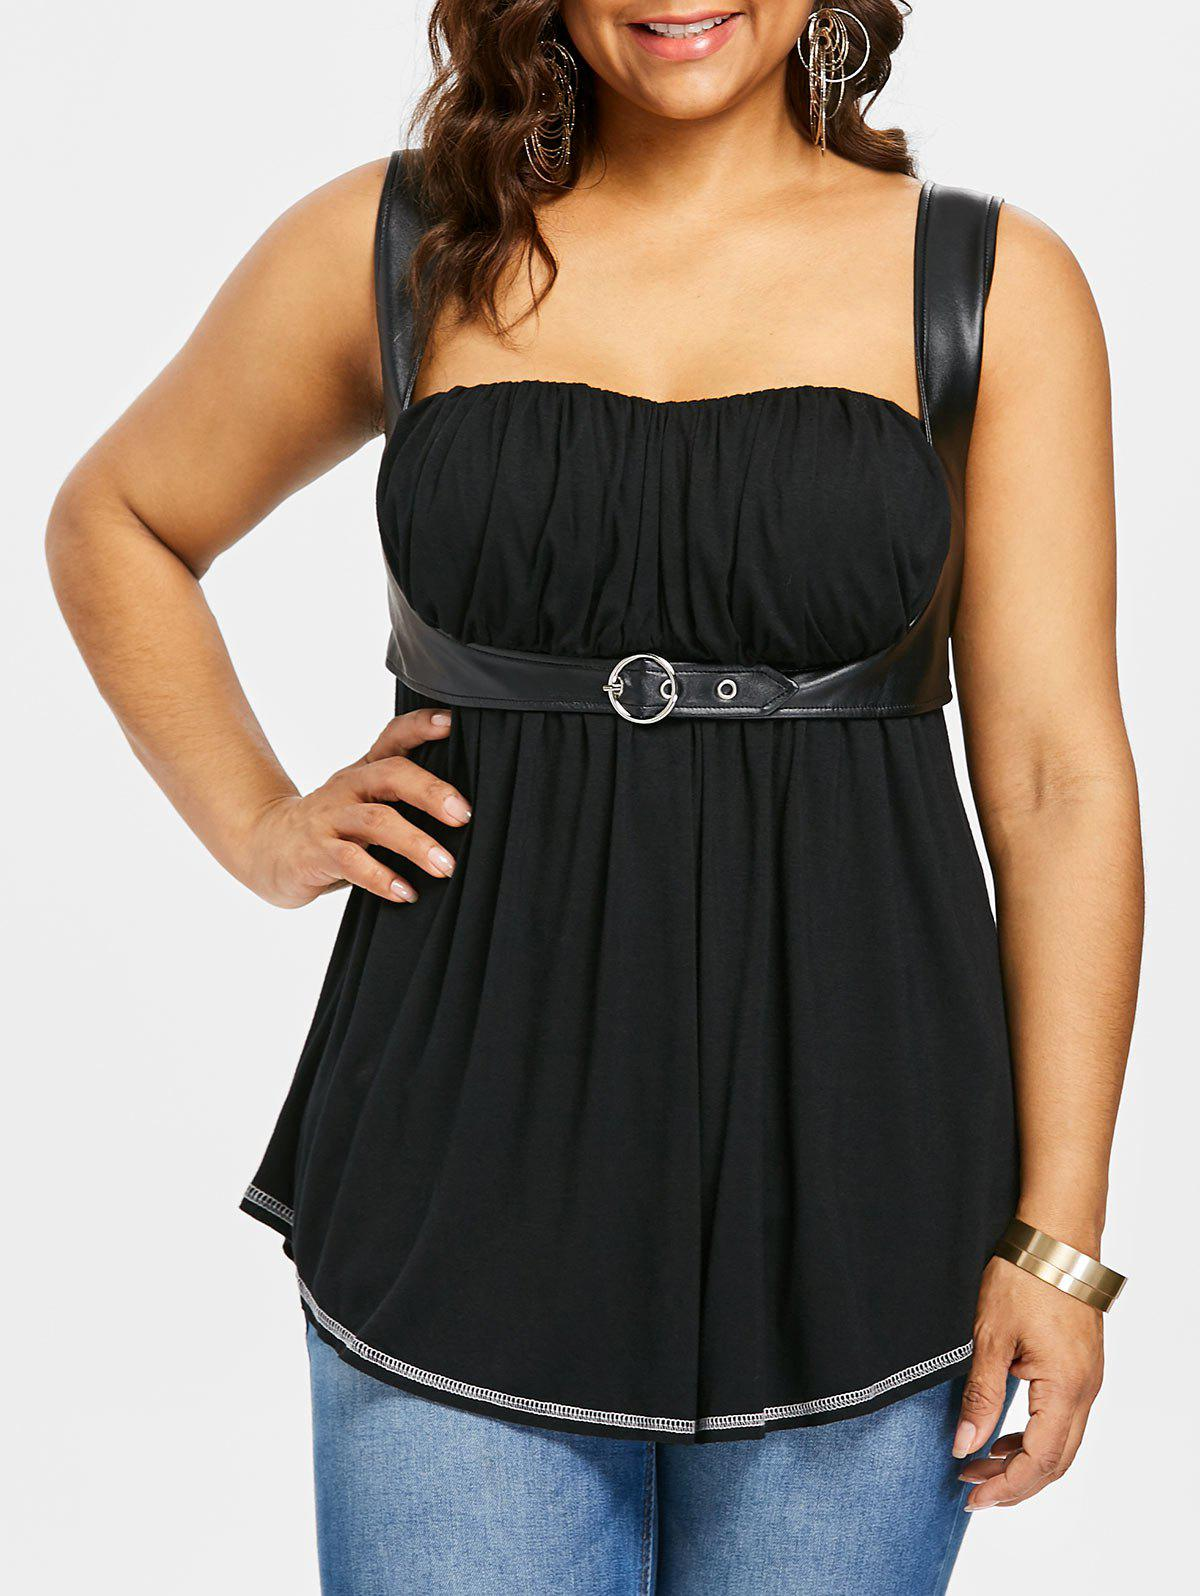 Affordable Plus Size PU Leather Trim Gothic Tank Top